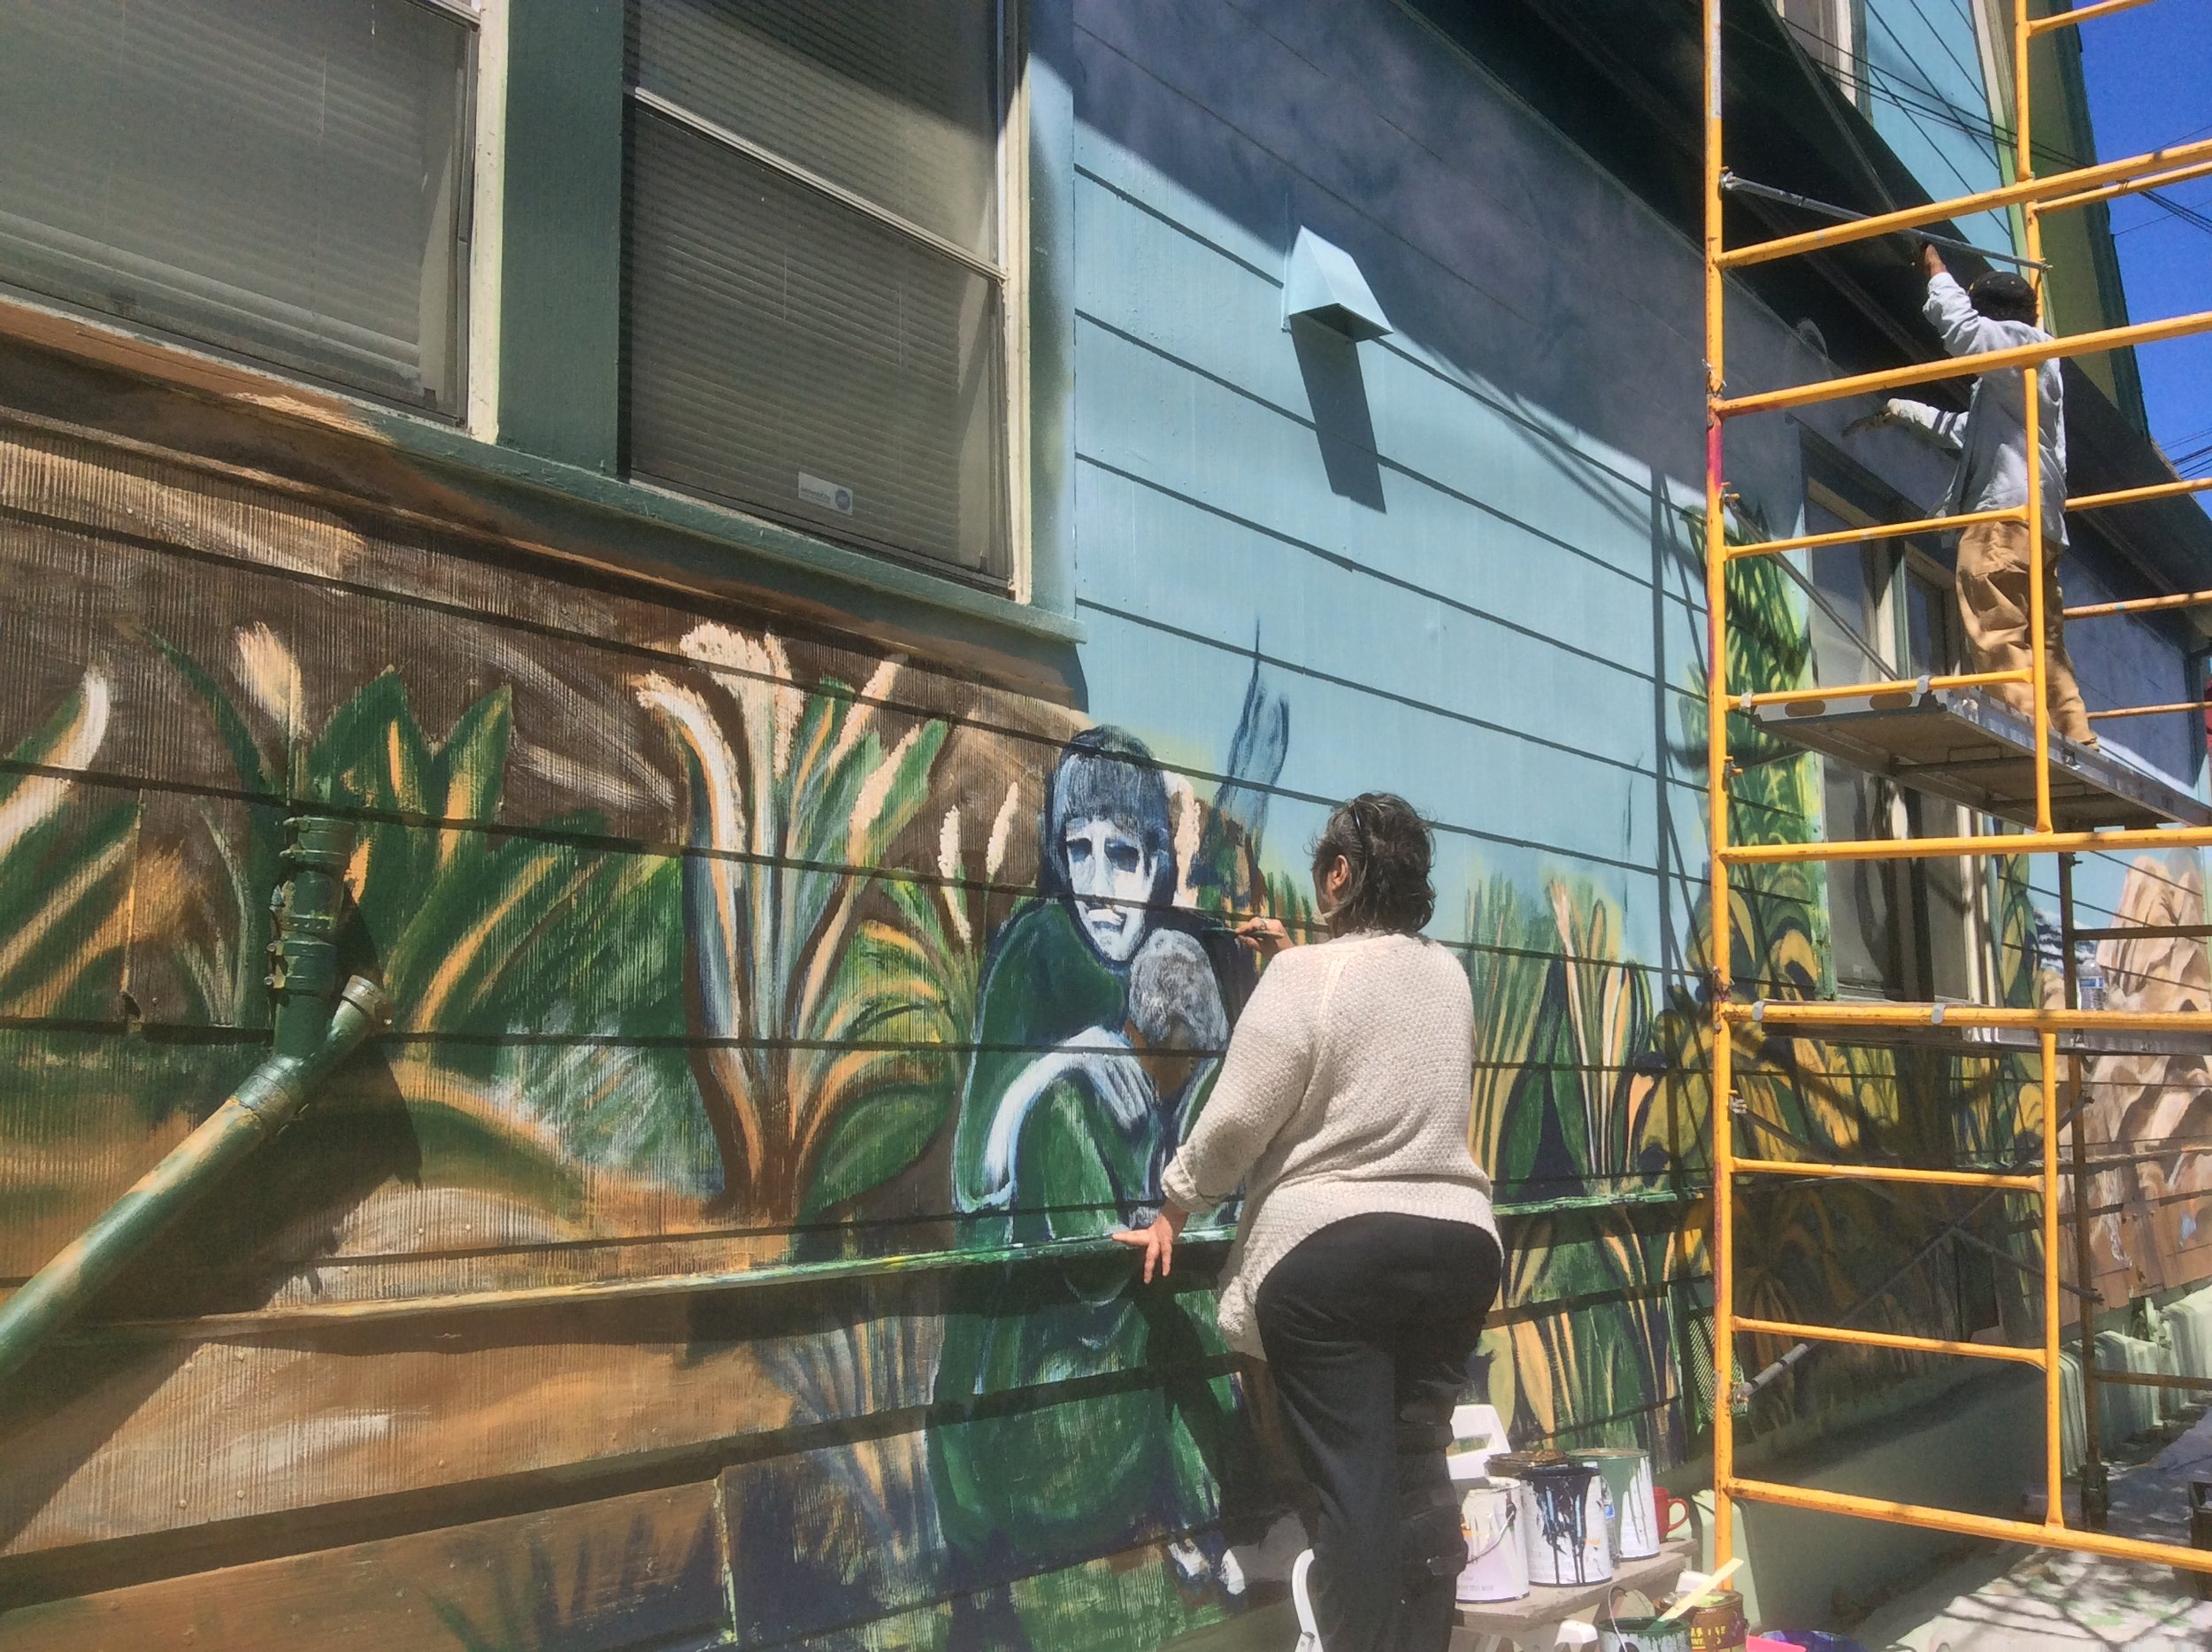 """Veterans Artists, Ann Reesman and Pasha Evins working on VRP's """"Faces of Veterans Through Artistic Expression"""" Mural Project"""